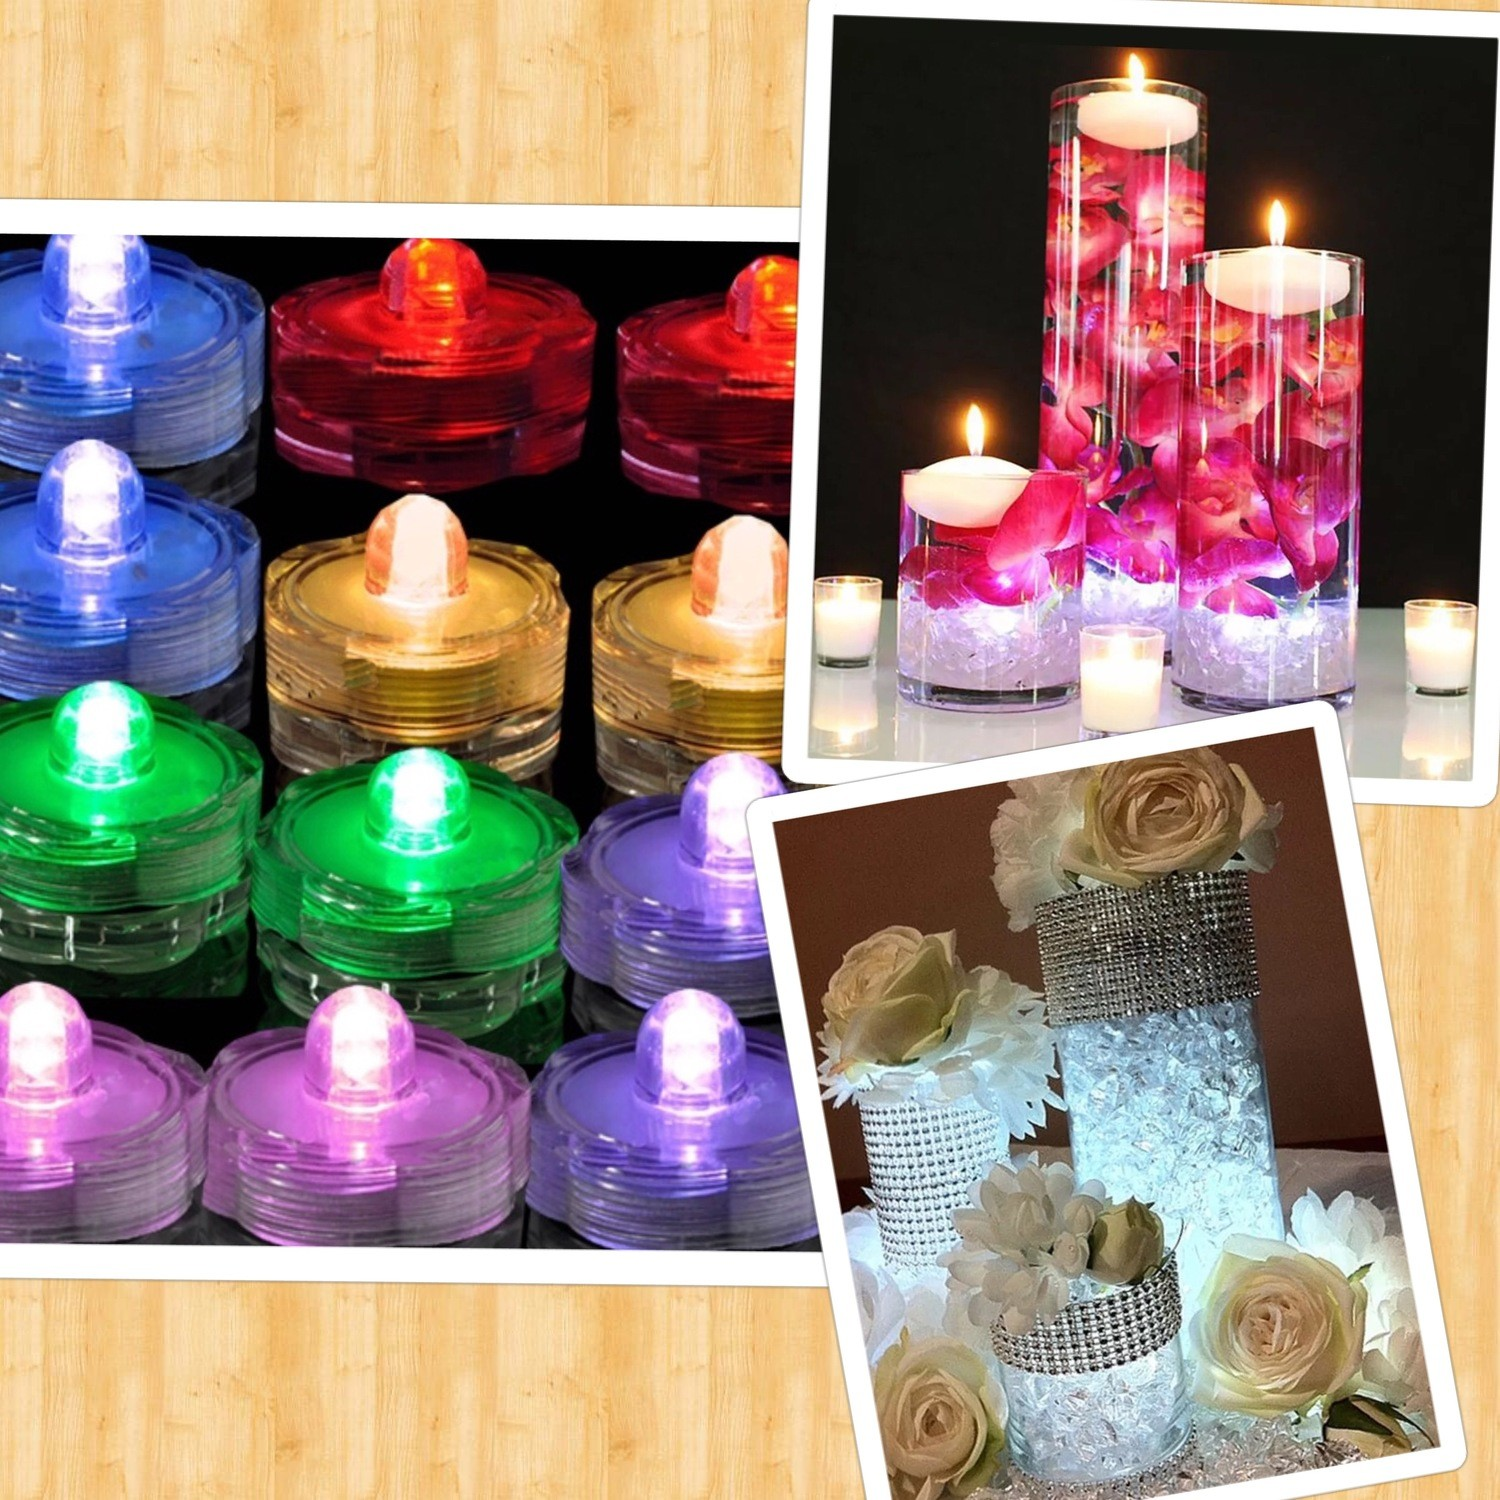 5 10 20 30 Bright Submersible LED Floral Tea Light Vase Party Wedding Waterproof